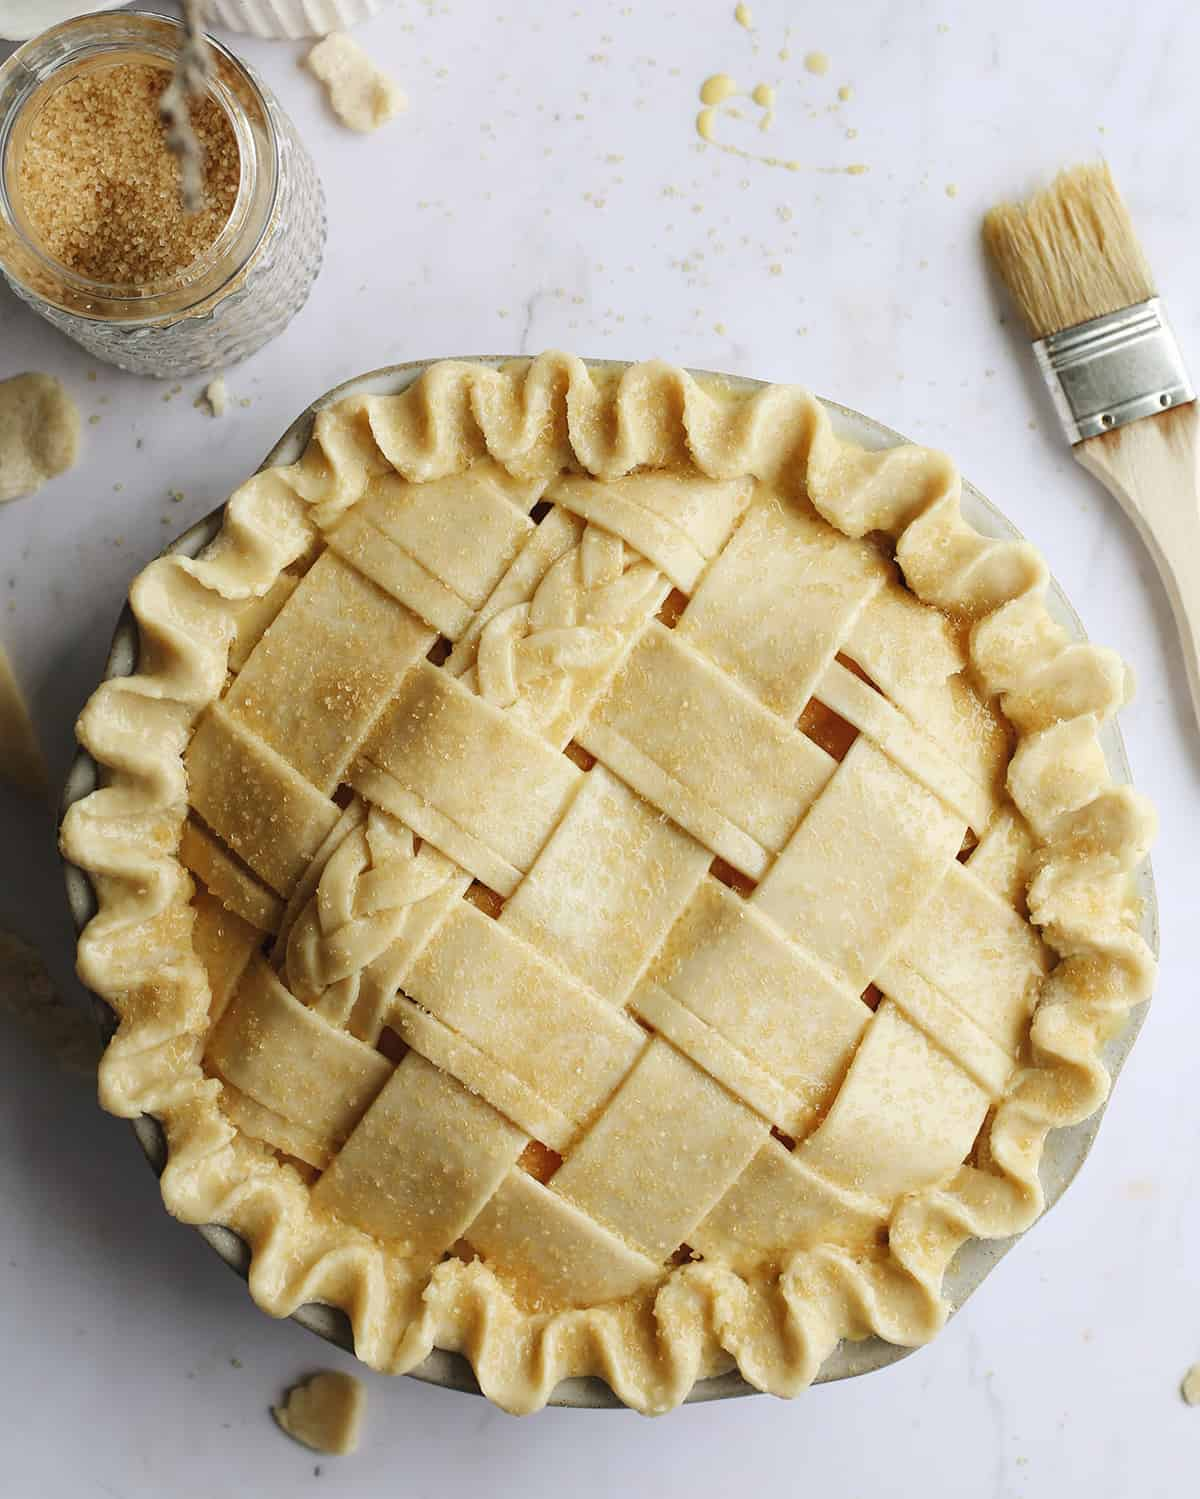 Peach Pie with a lattice crust before being baked